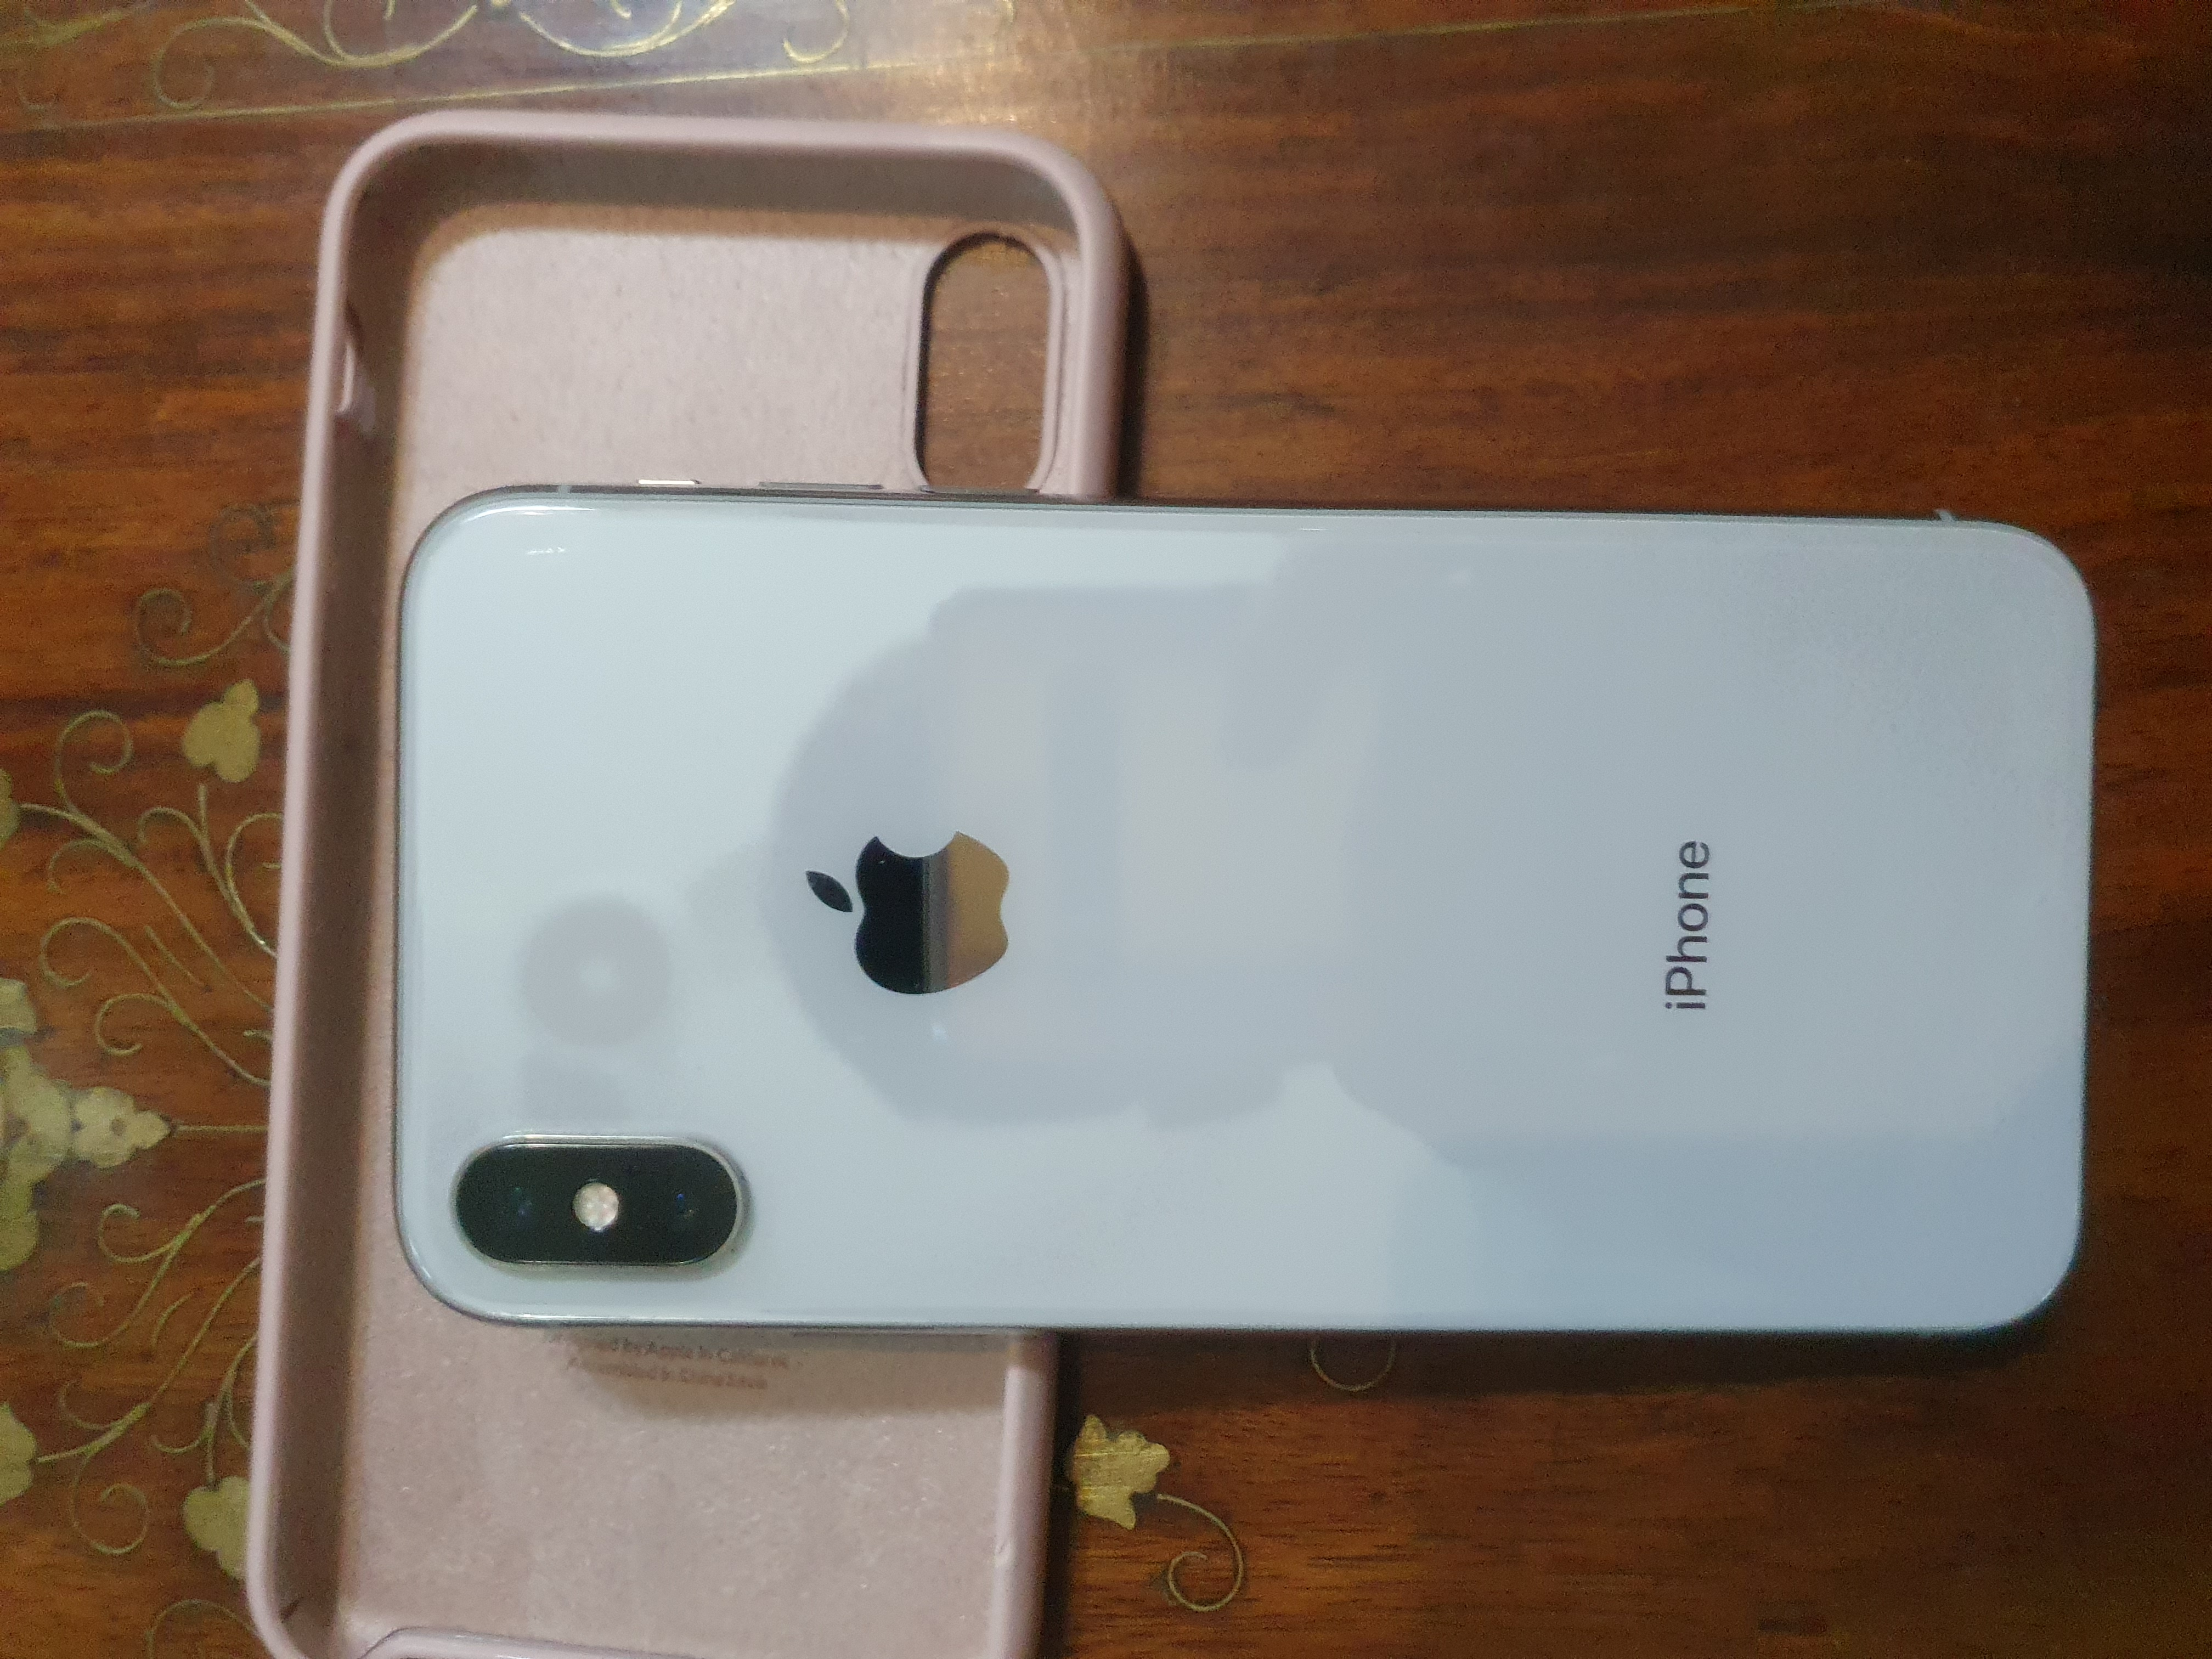 Iphone x for sale - photo 1